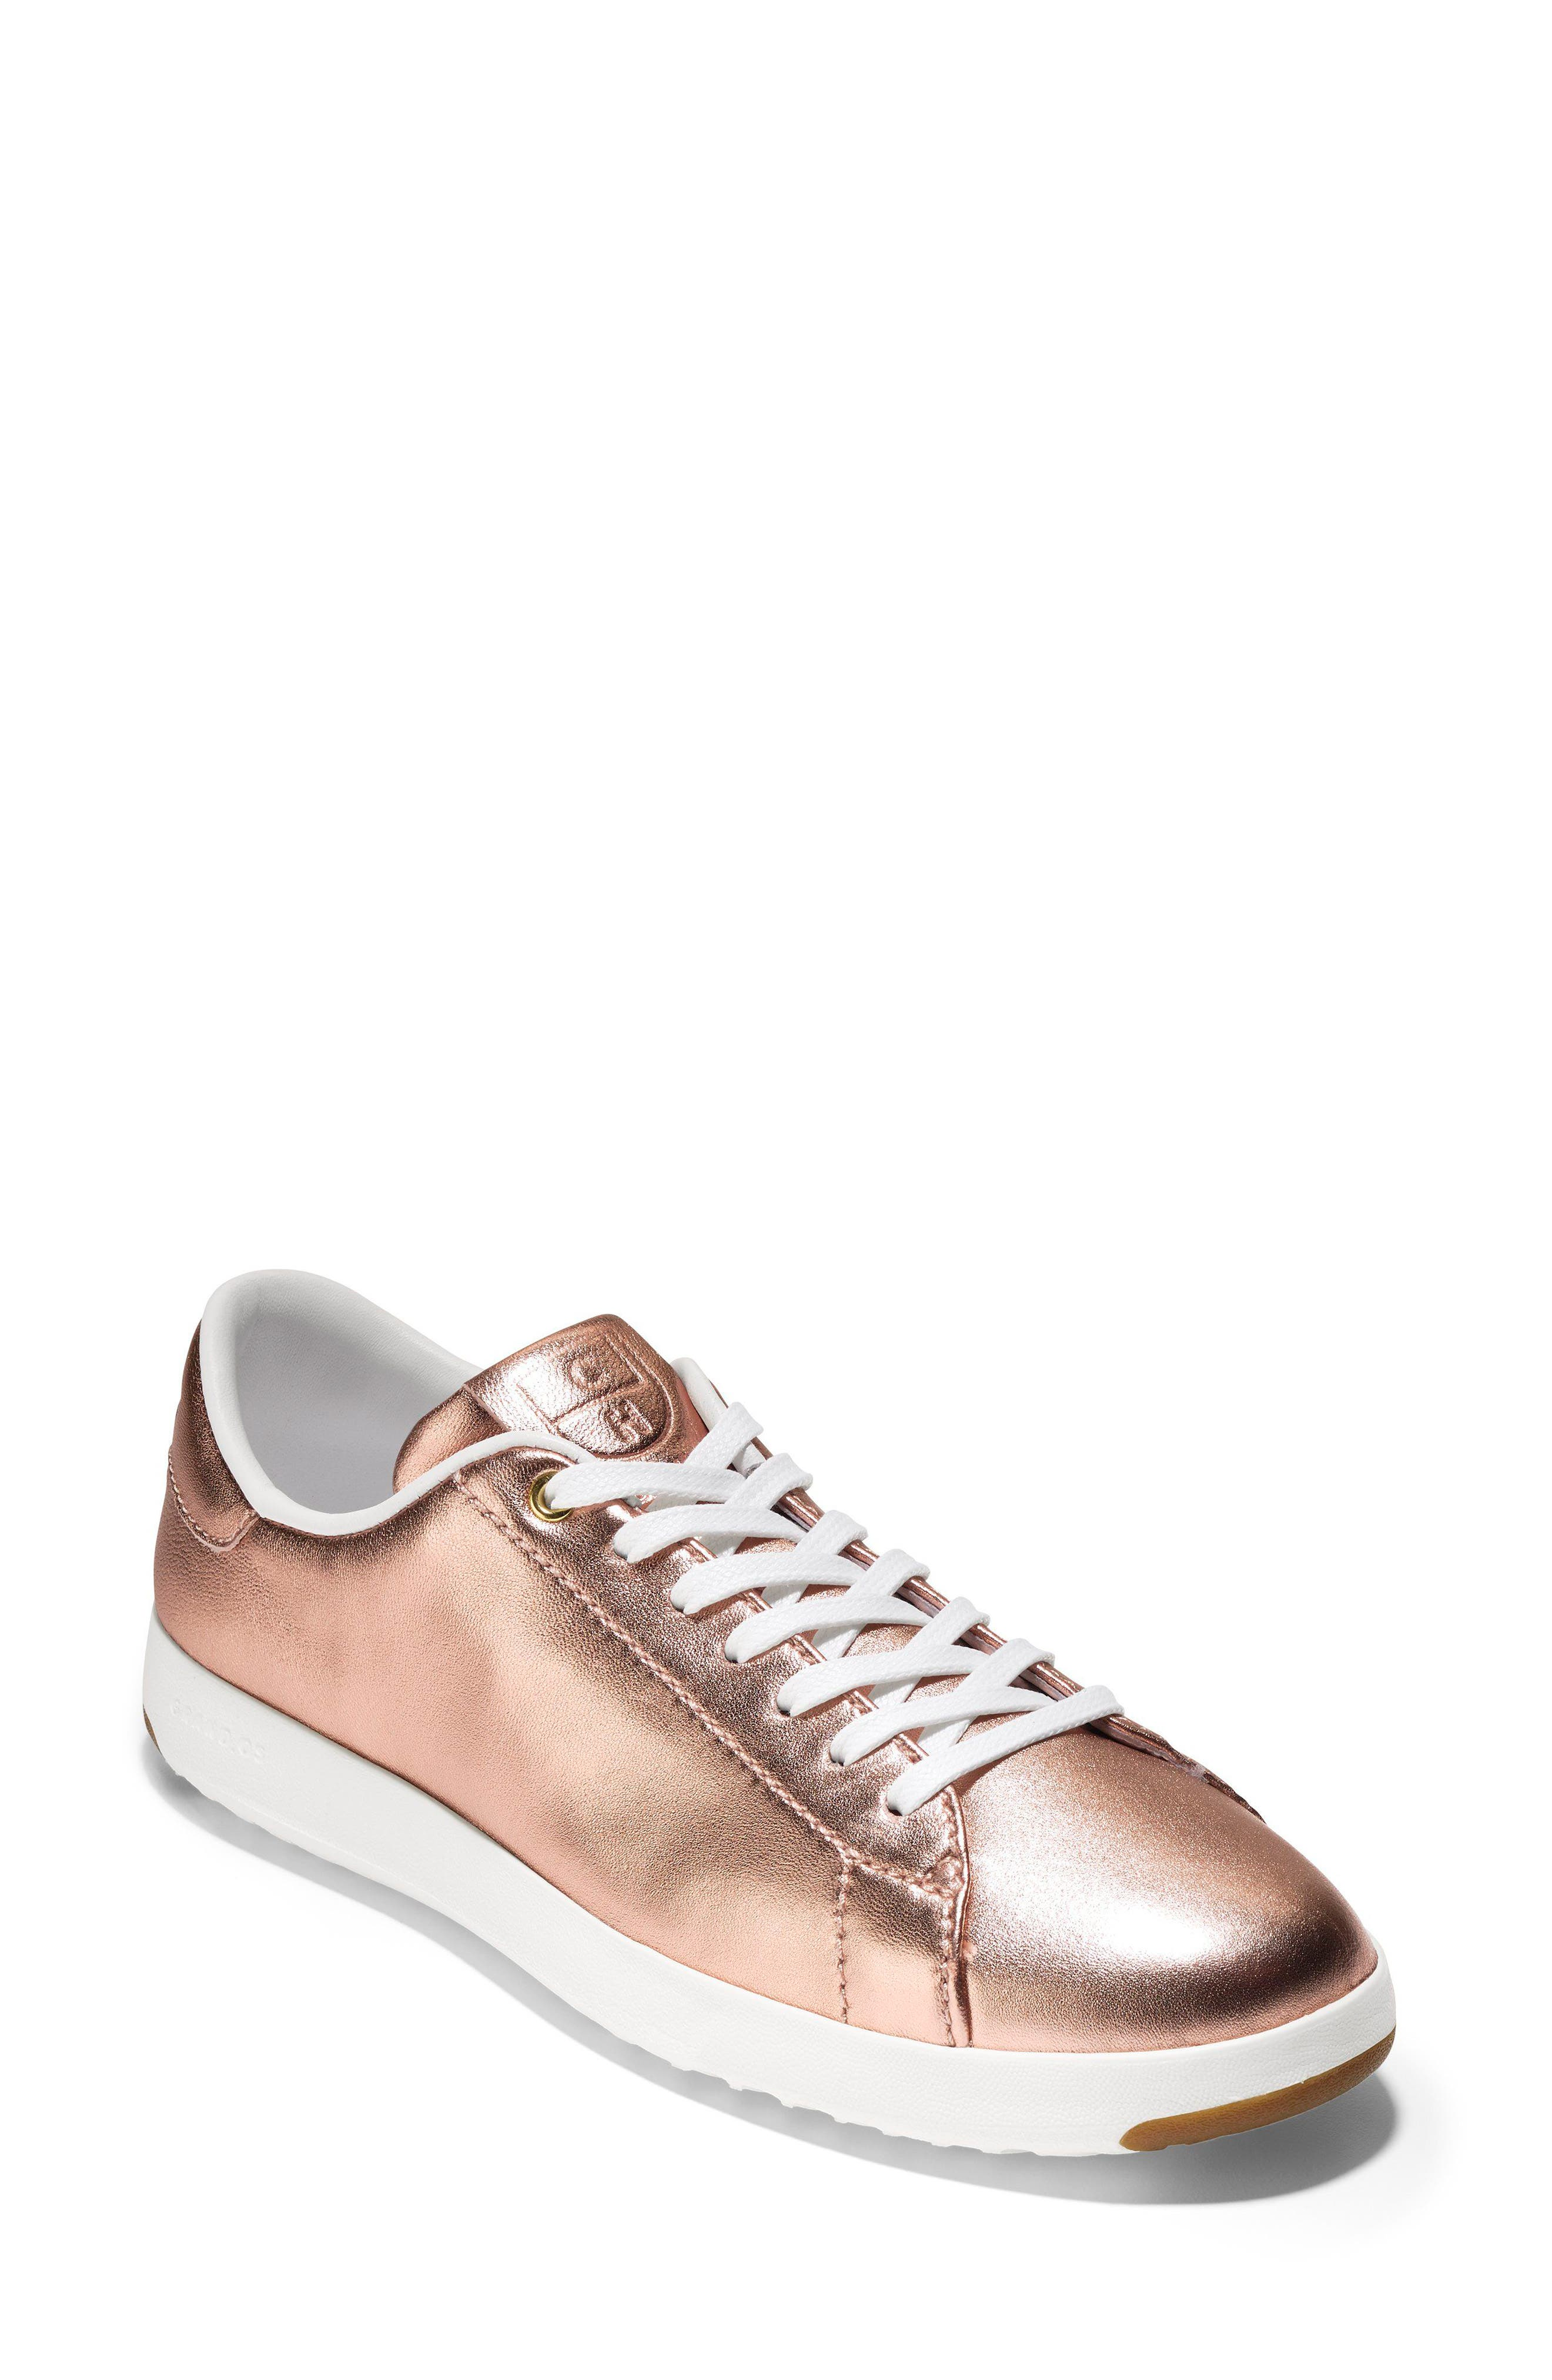 GrandPro Tennis Shoe,                         Main,                         color, ROSE GOLD LEATHER